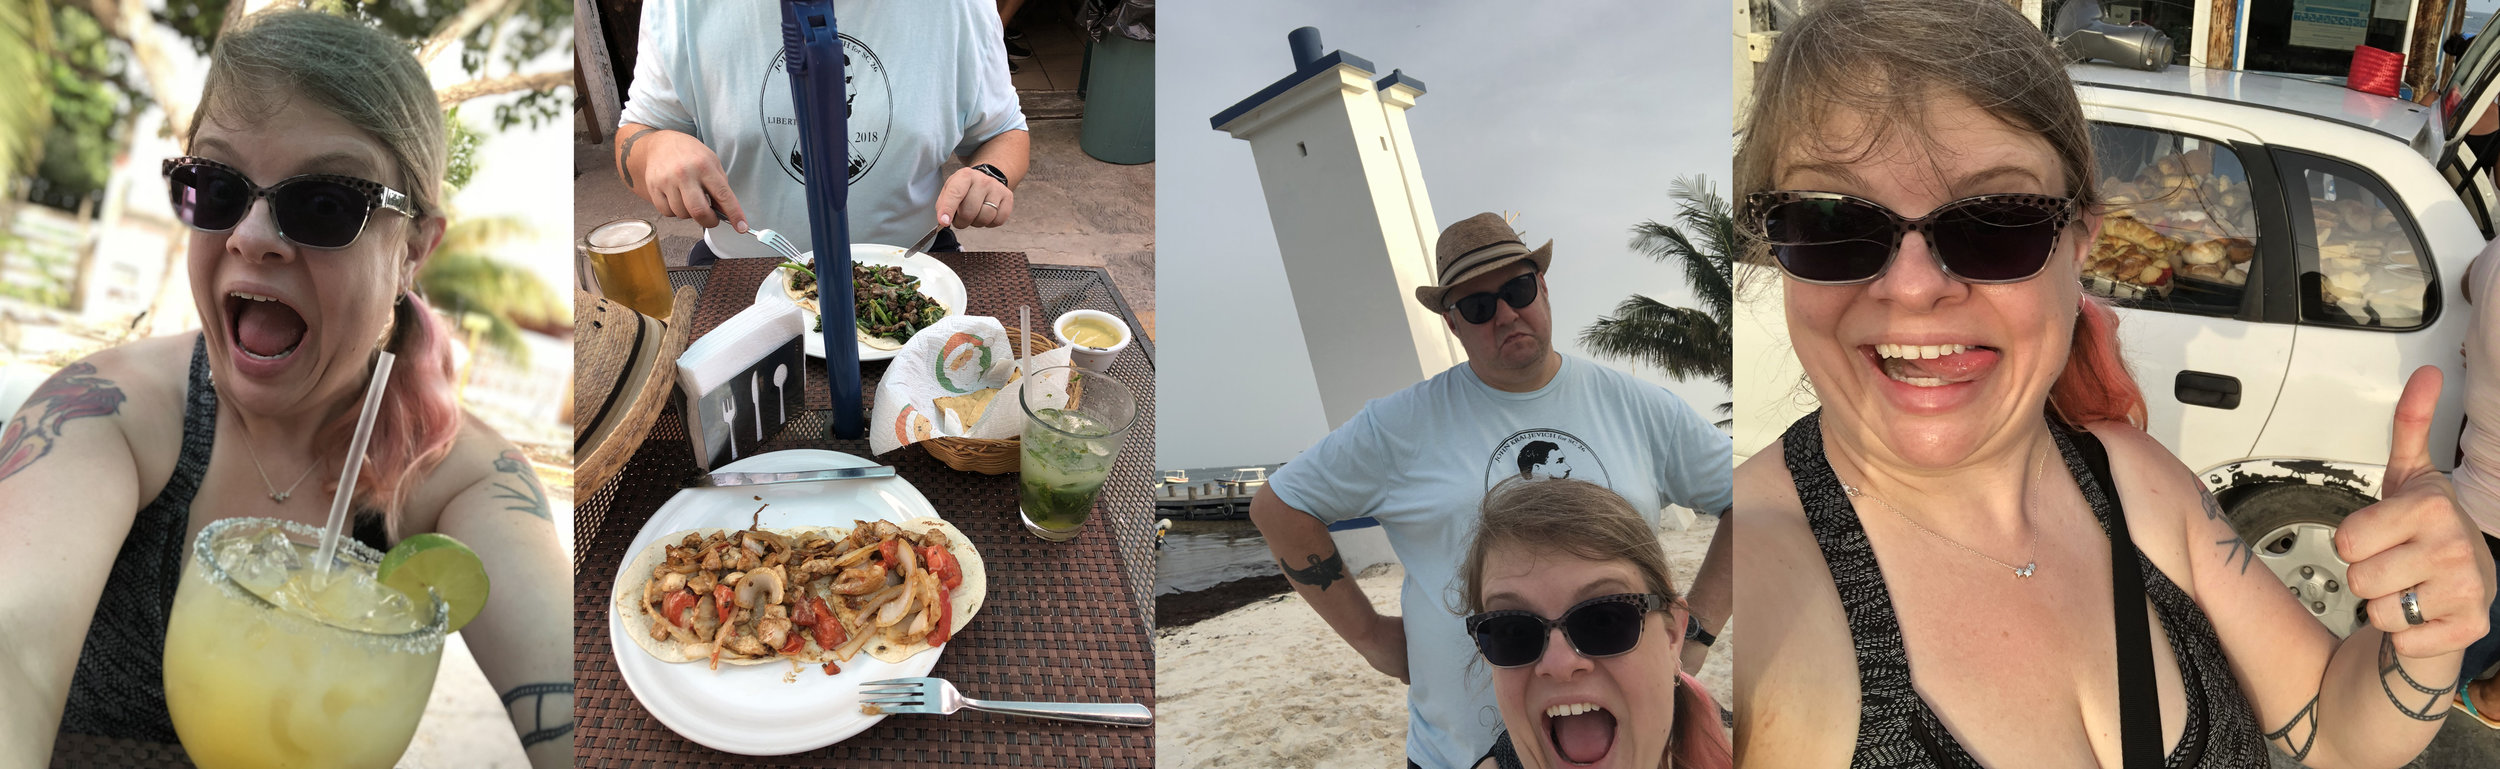 a brief tour of Puerto Morelos: freshly squeezed and made margarita the size of my head, and amazing fresh tacos at T@cos.com (mine is grilled chicken, tomatoes, onions, cheese on fresh tortillas, hubby has meat and peppers and spinach); the leaning lighthouse of Puerto Morelos; and one of the many cars that sells pan dulce on the town square at night. Full disclosure: I don't know how to smile in photos so I have developed a deranged face for selfies.